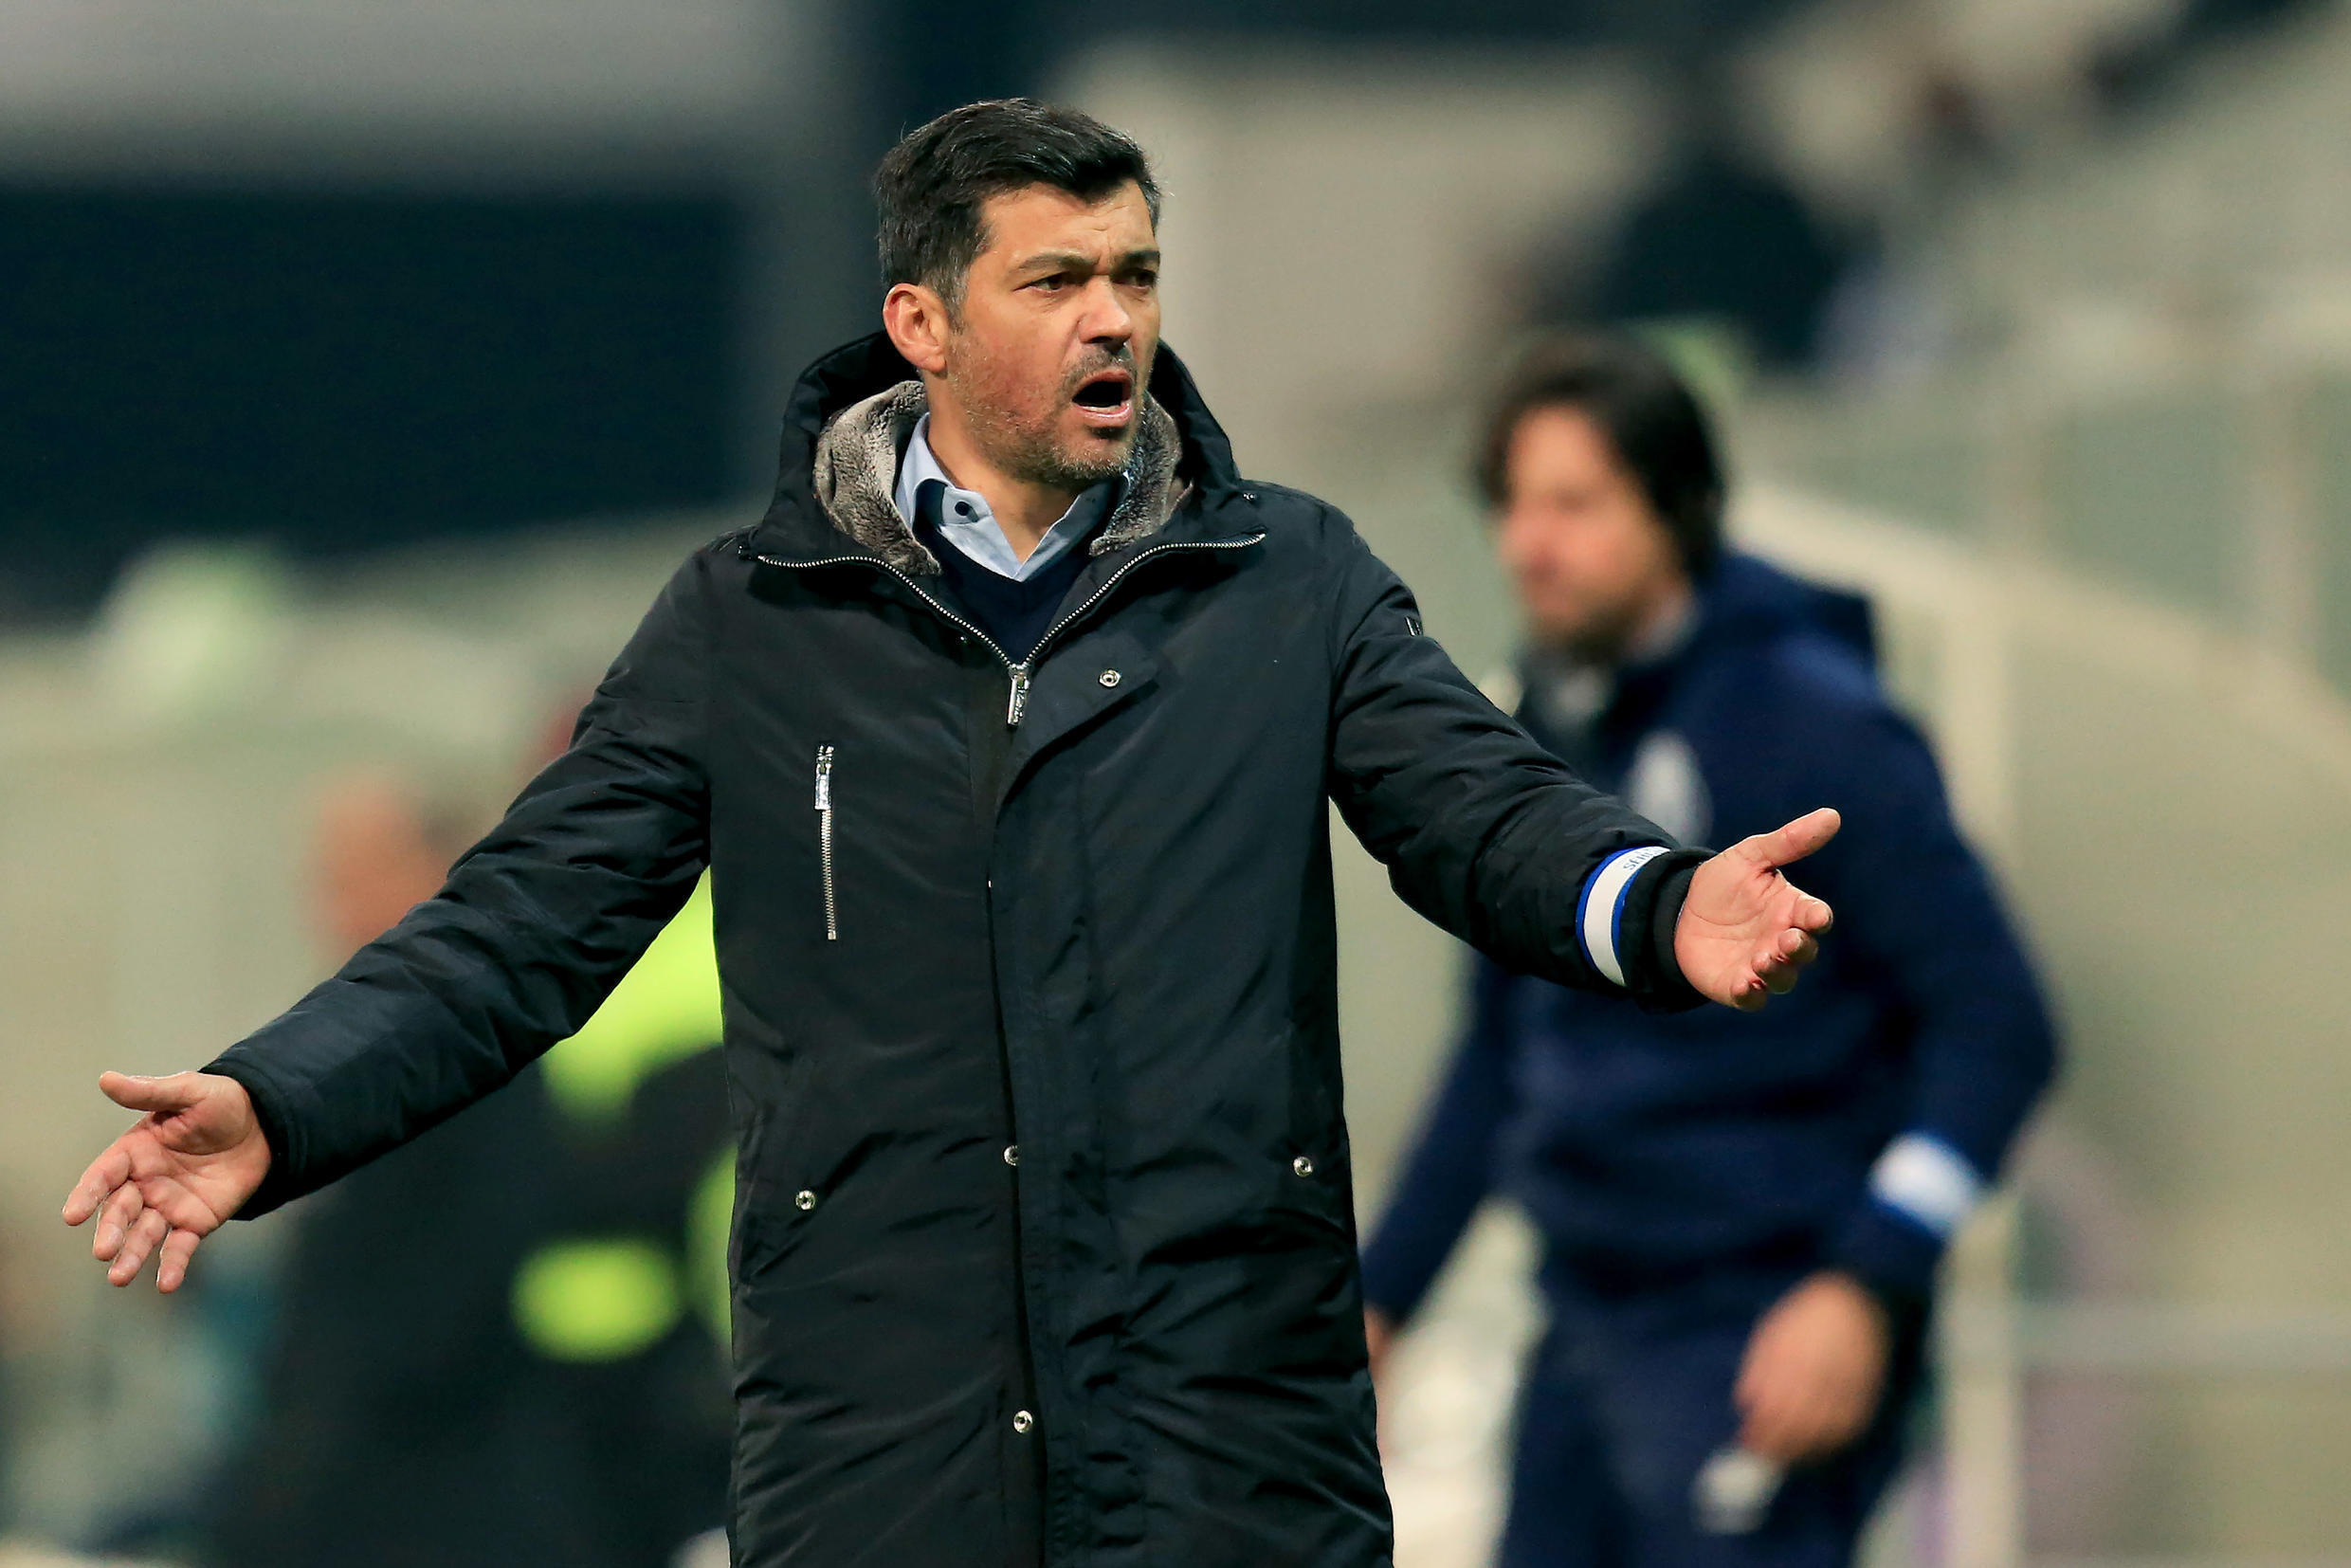 Sergio Conceicao led Porto to the top of the Primeira Liga before play was suspended due to the coronavirus pandemic.